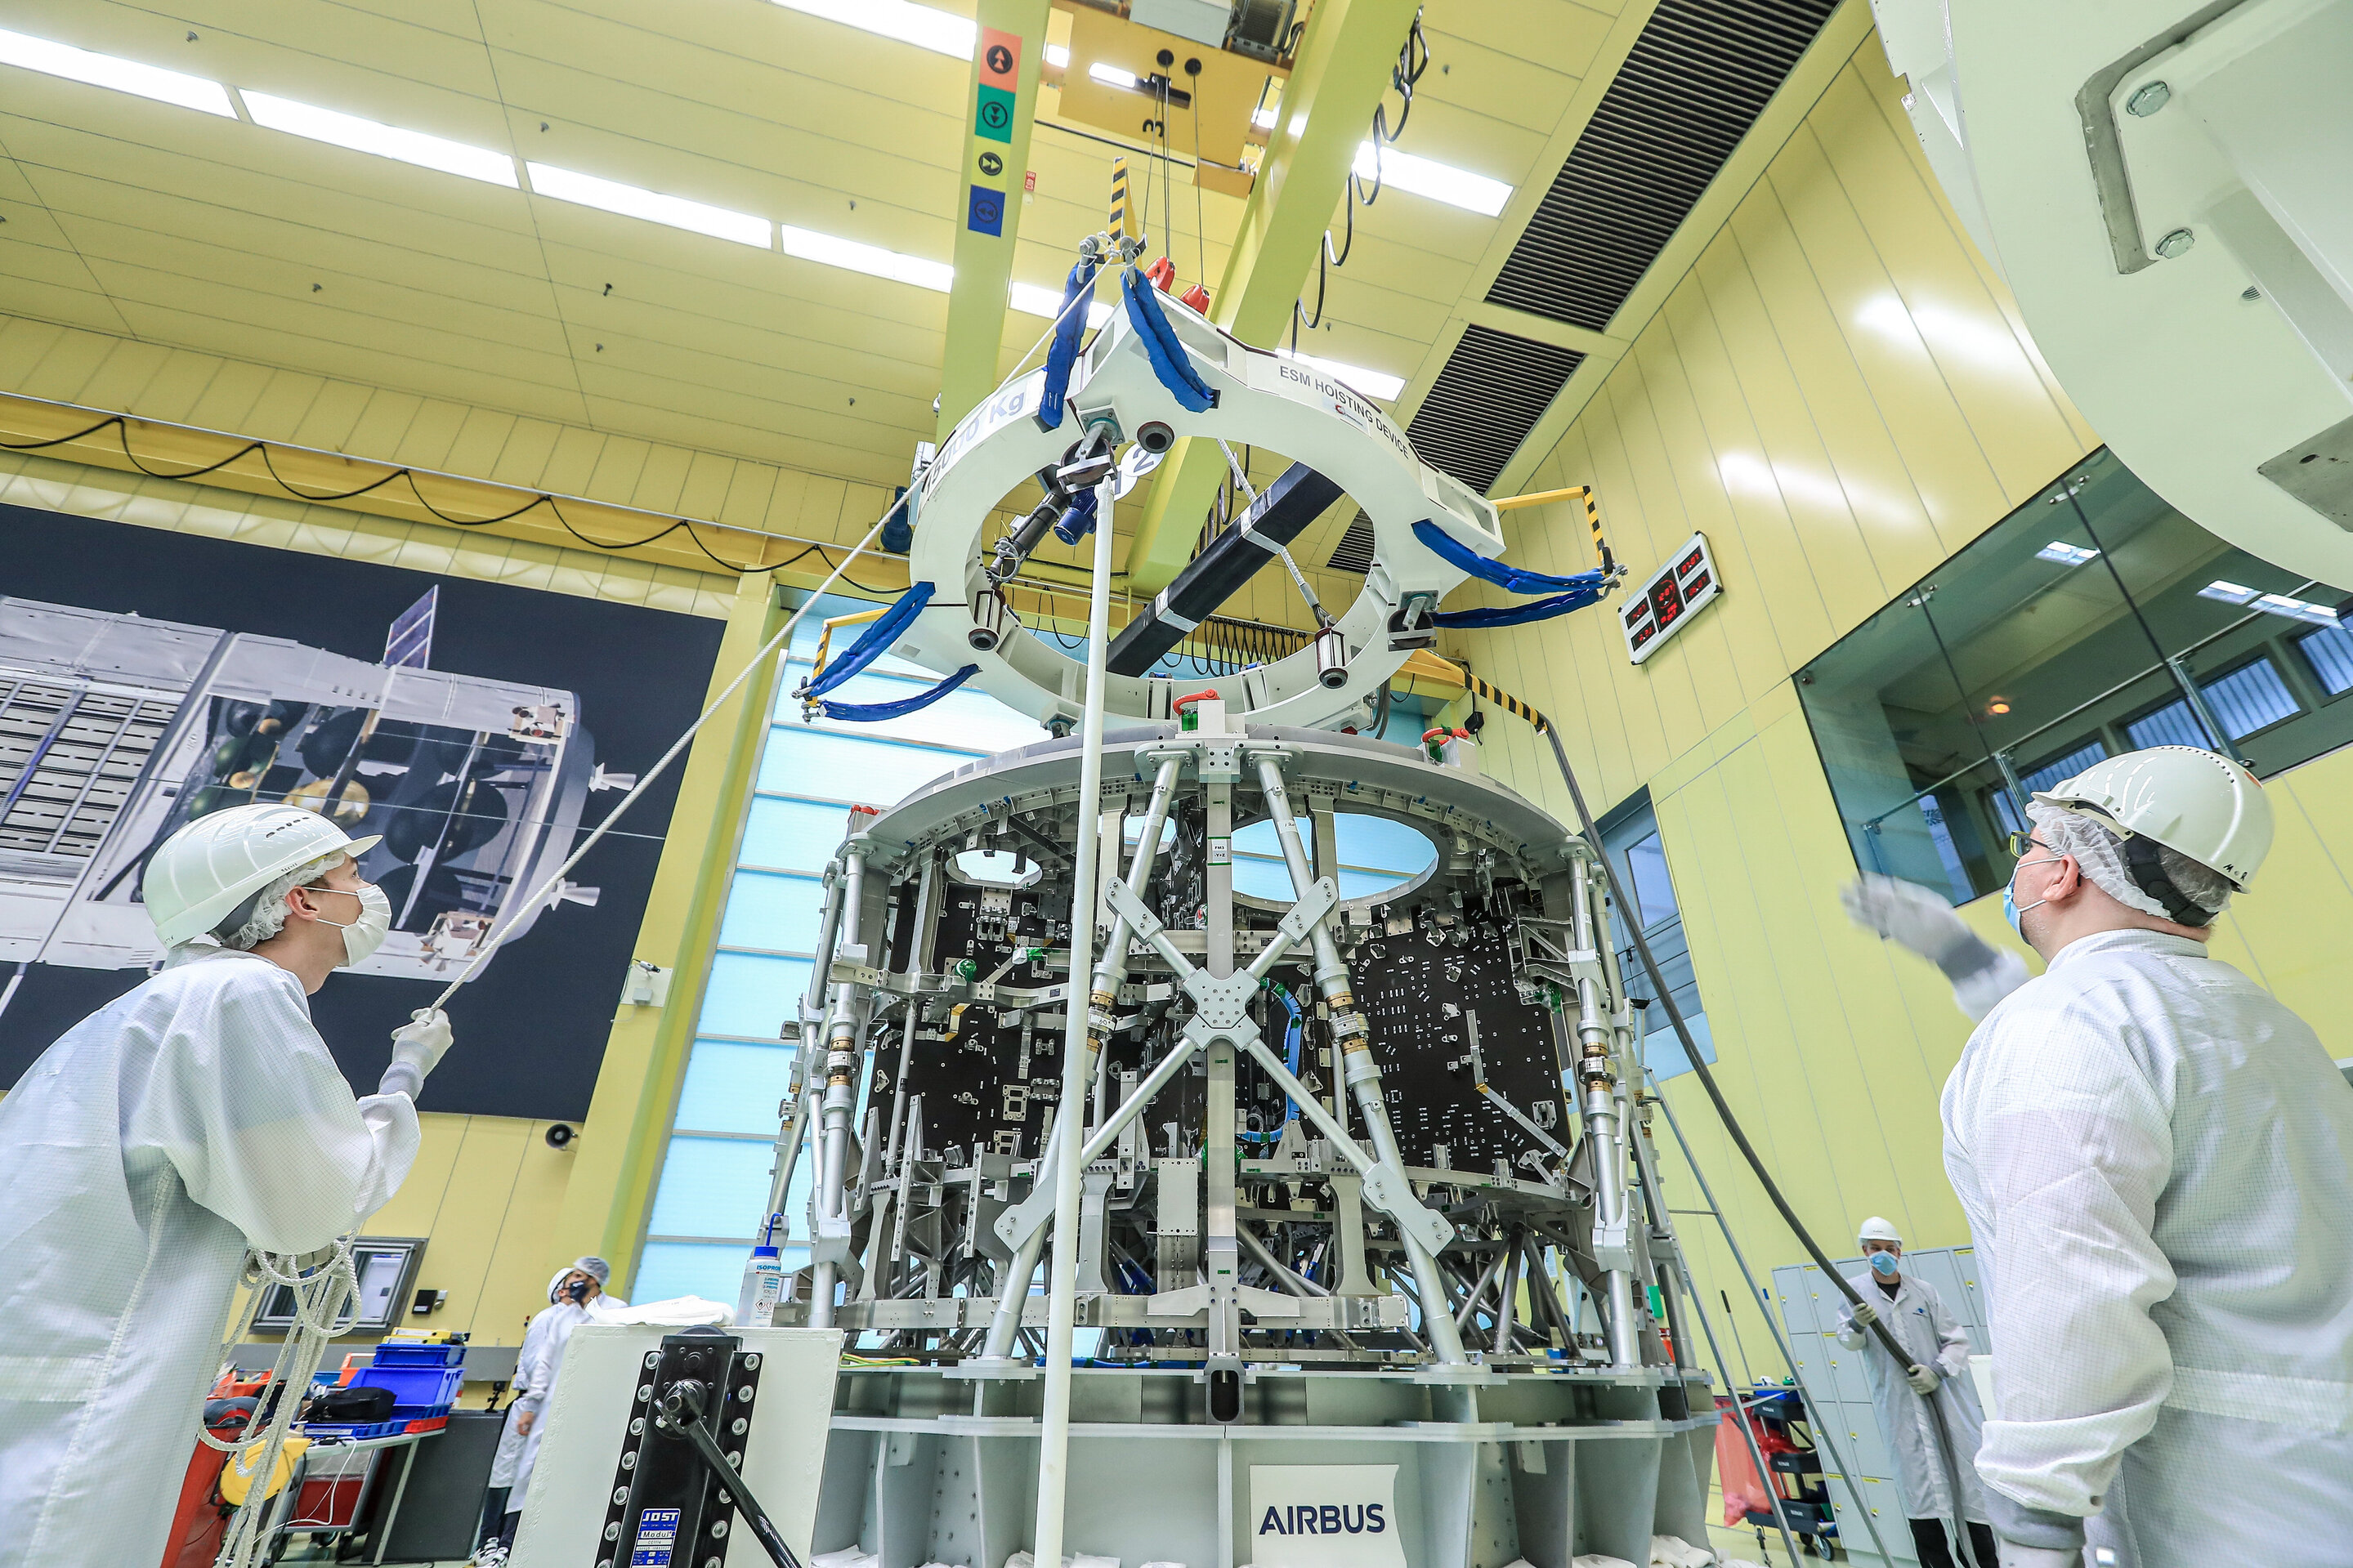 European service module structure for moon landing arrives in Bremen